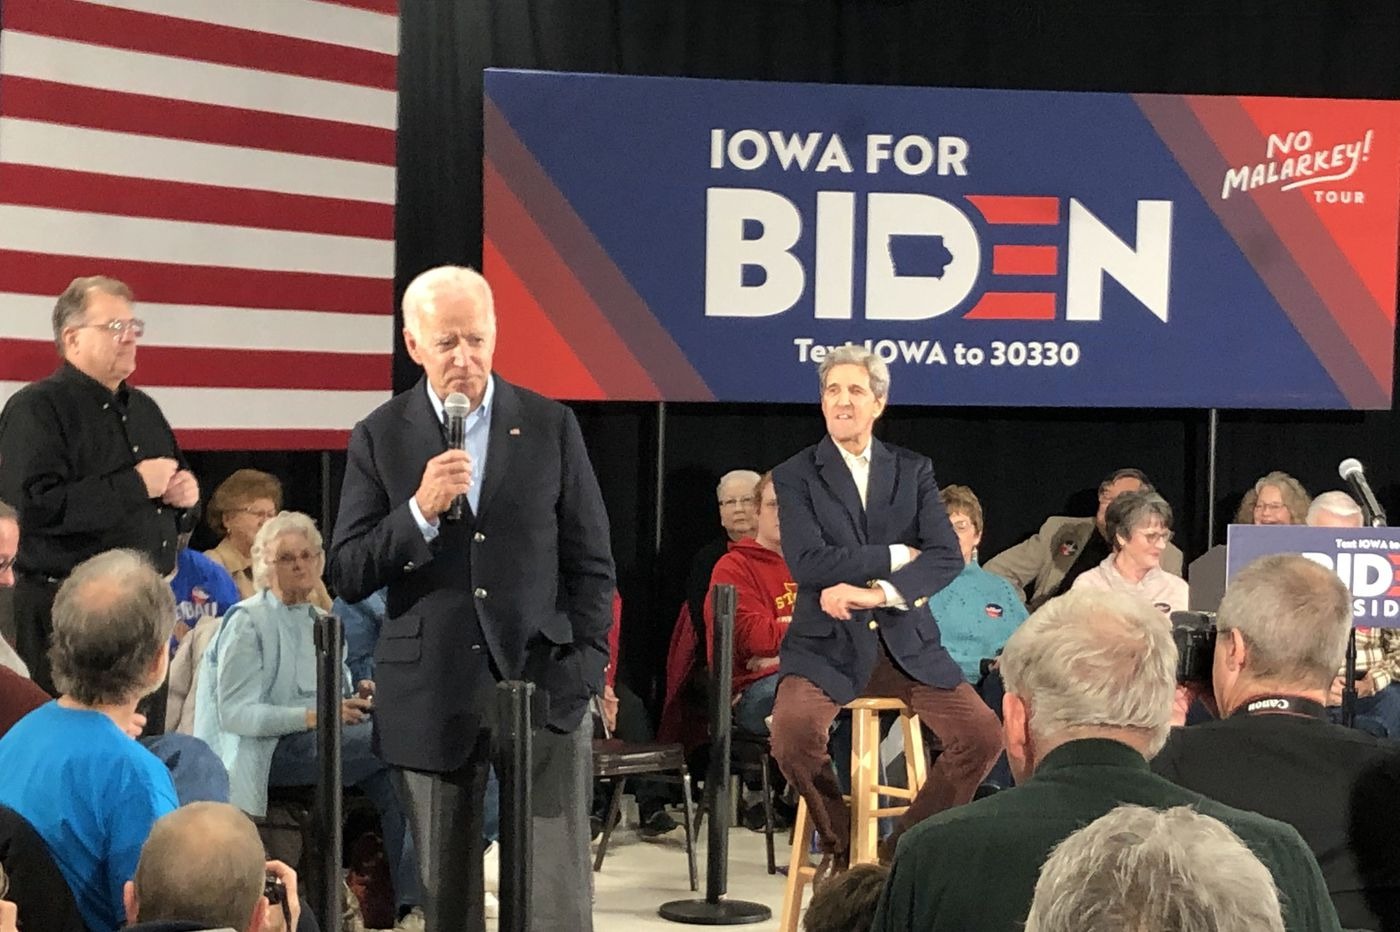 John Kerry hails Joe Biden's experience as former VP tries to rally in Iowa